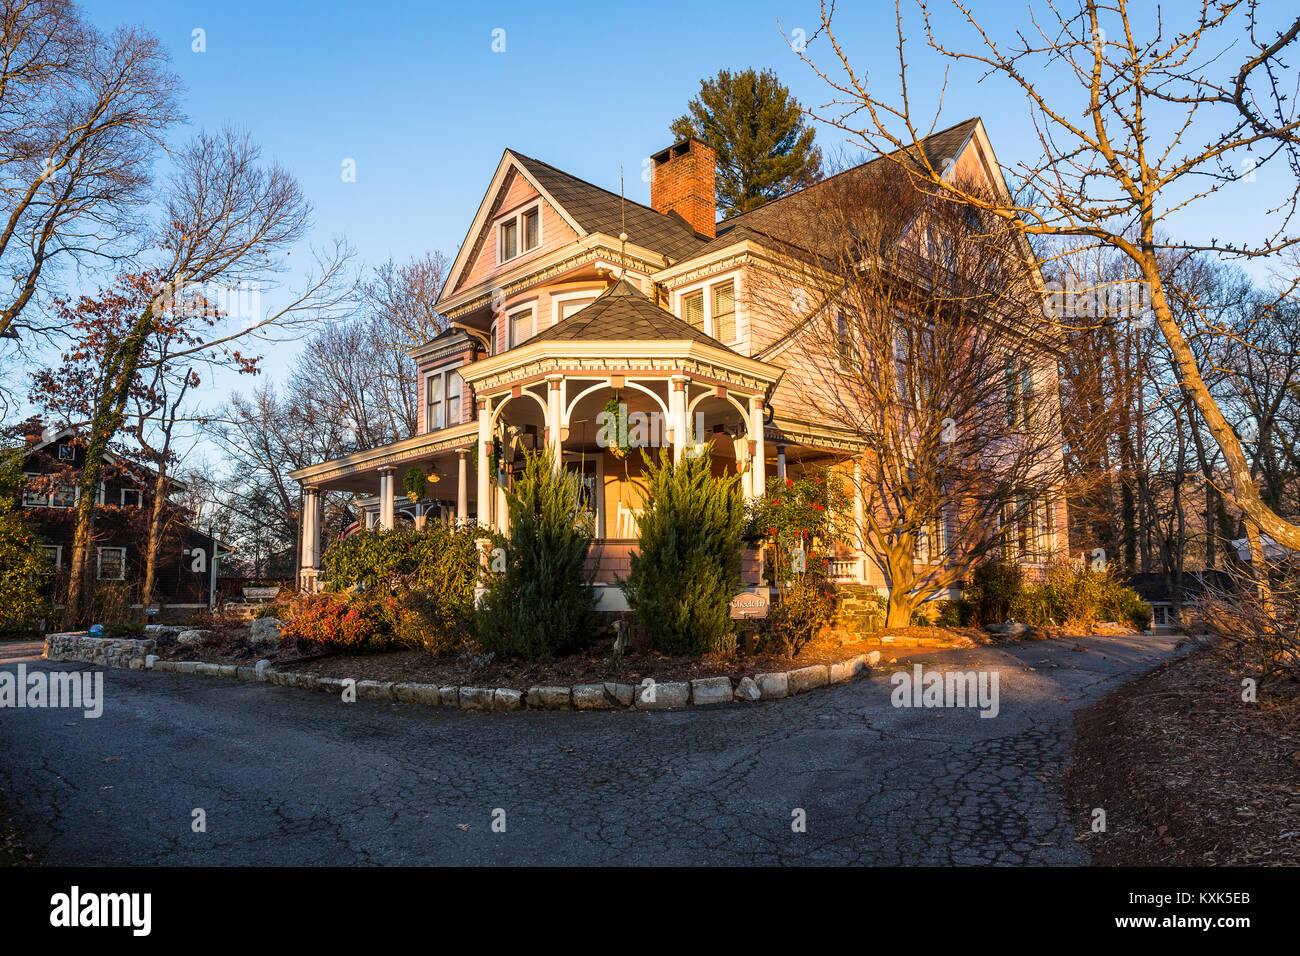 Late afternoon winter sunlight bathes an elegant Queen Anne Victorian property in Asheville, NC. - Stock Image